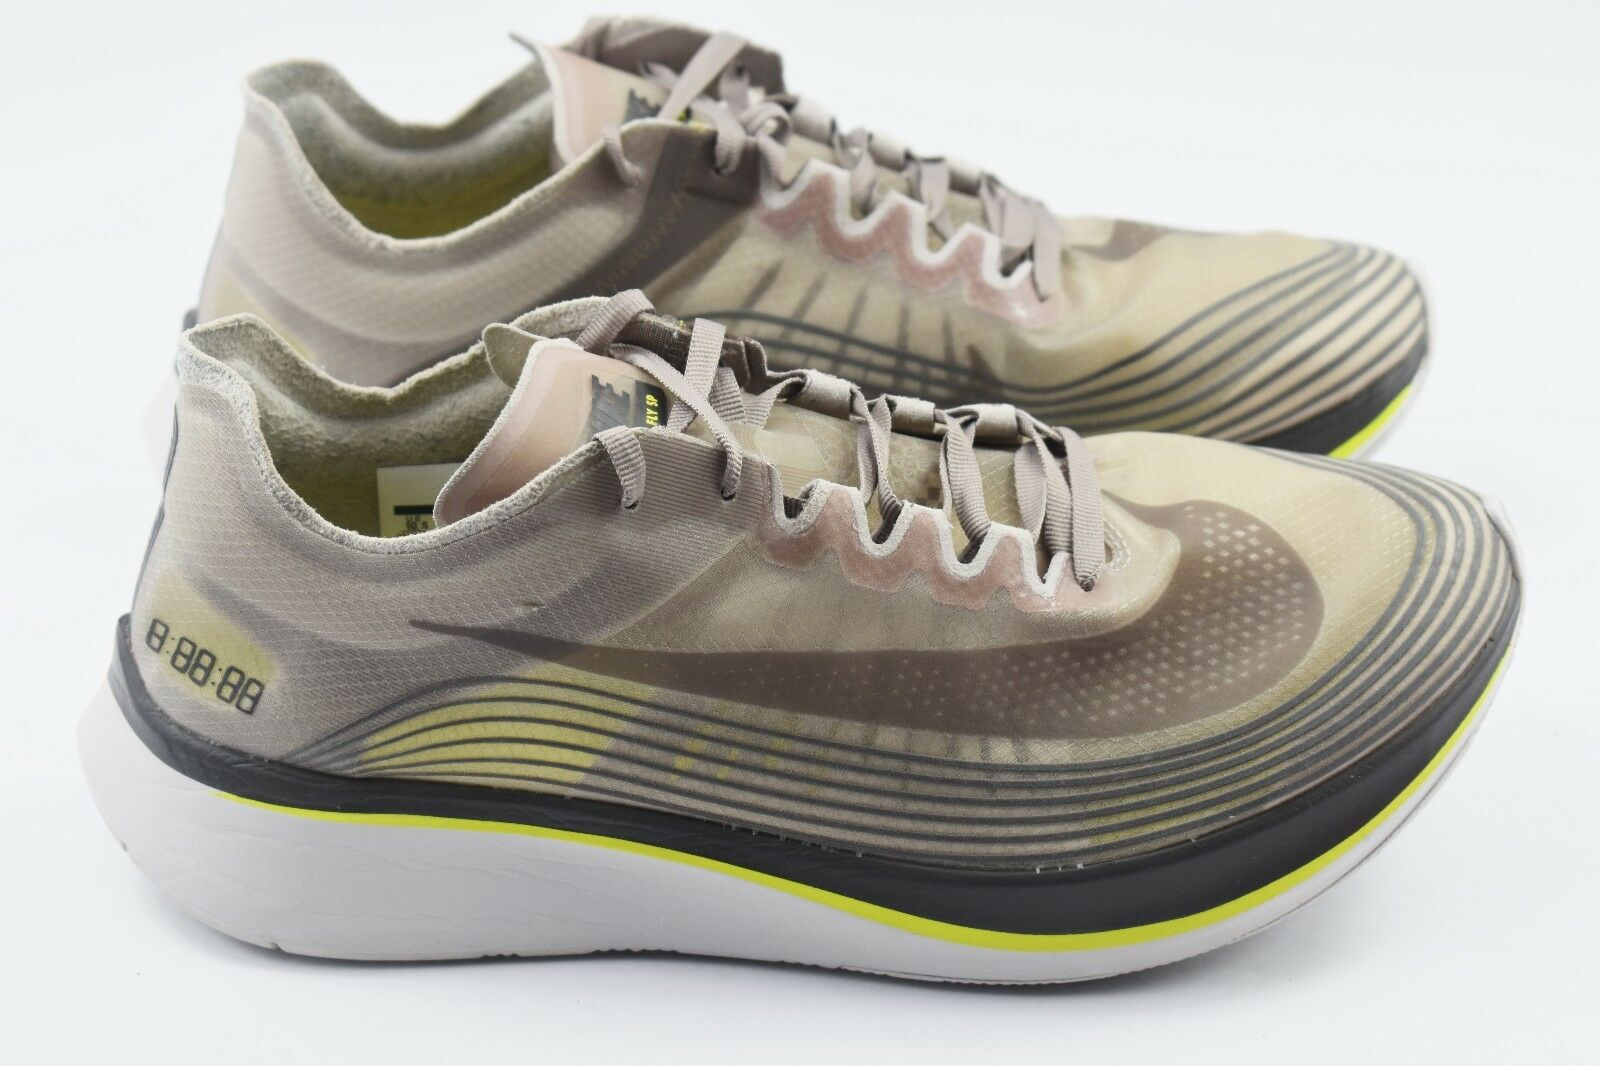 Nikelab Zoom Fly SP Mens Size 8.5 Running Shoes Sepia Stone  Yellow AA3172 201